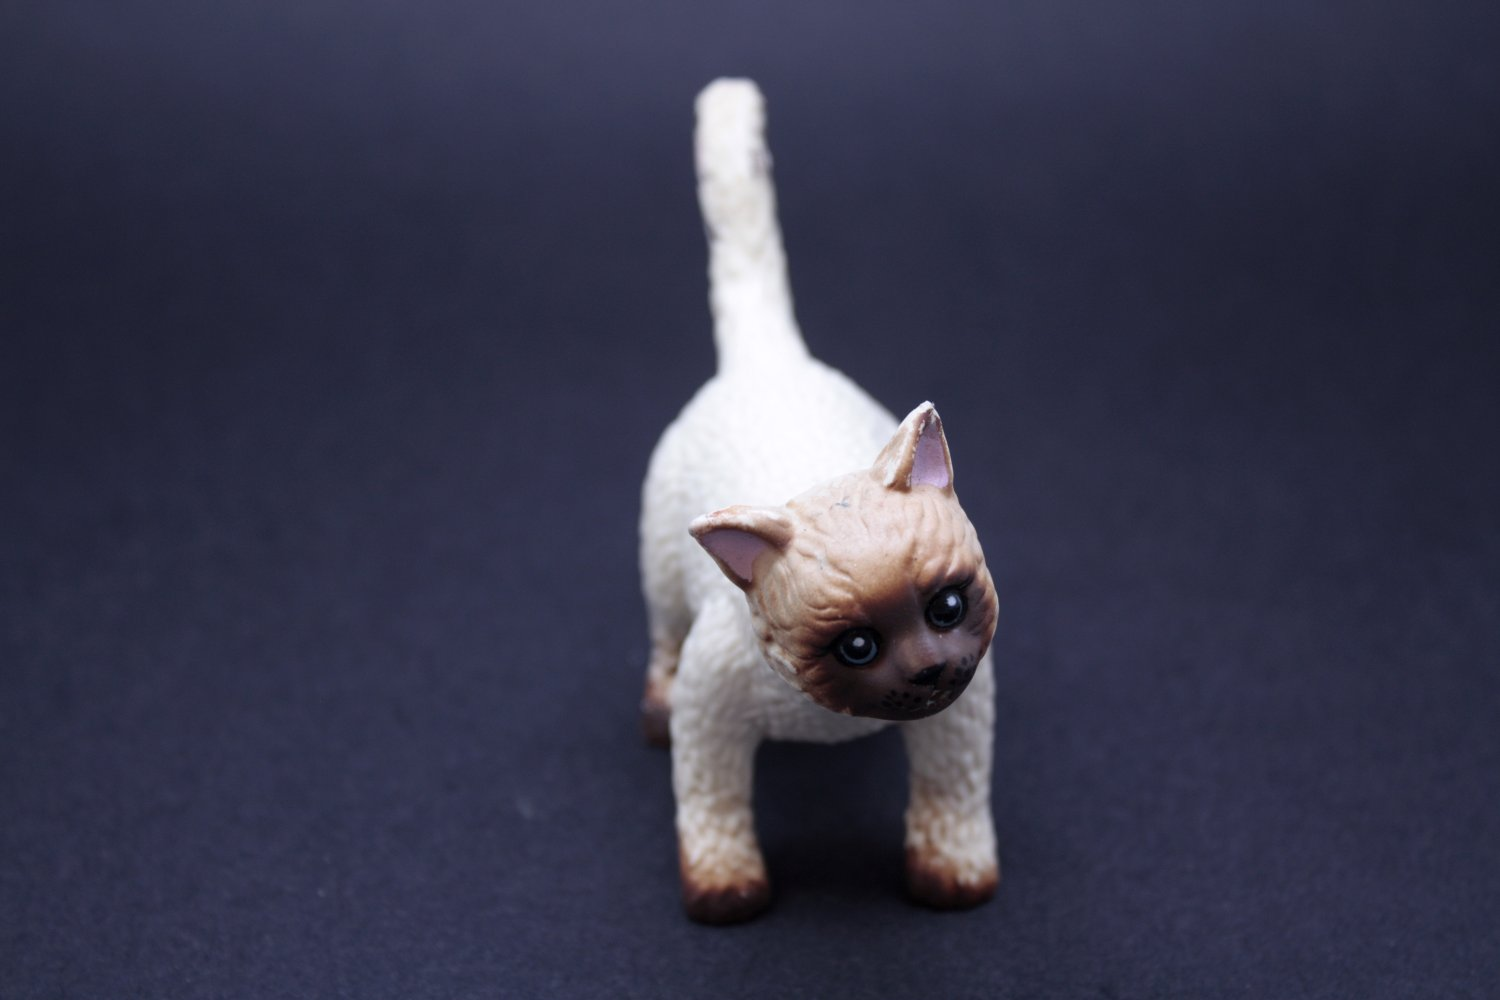 Rubber toy cat, Animal, Relaxation, Hygiene, Isolated, HQ Photo